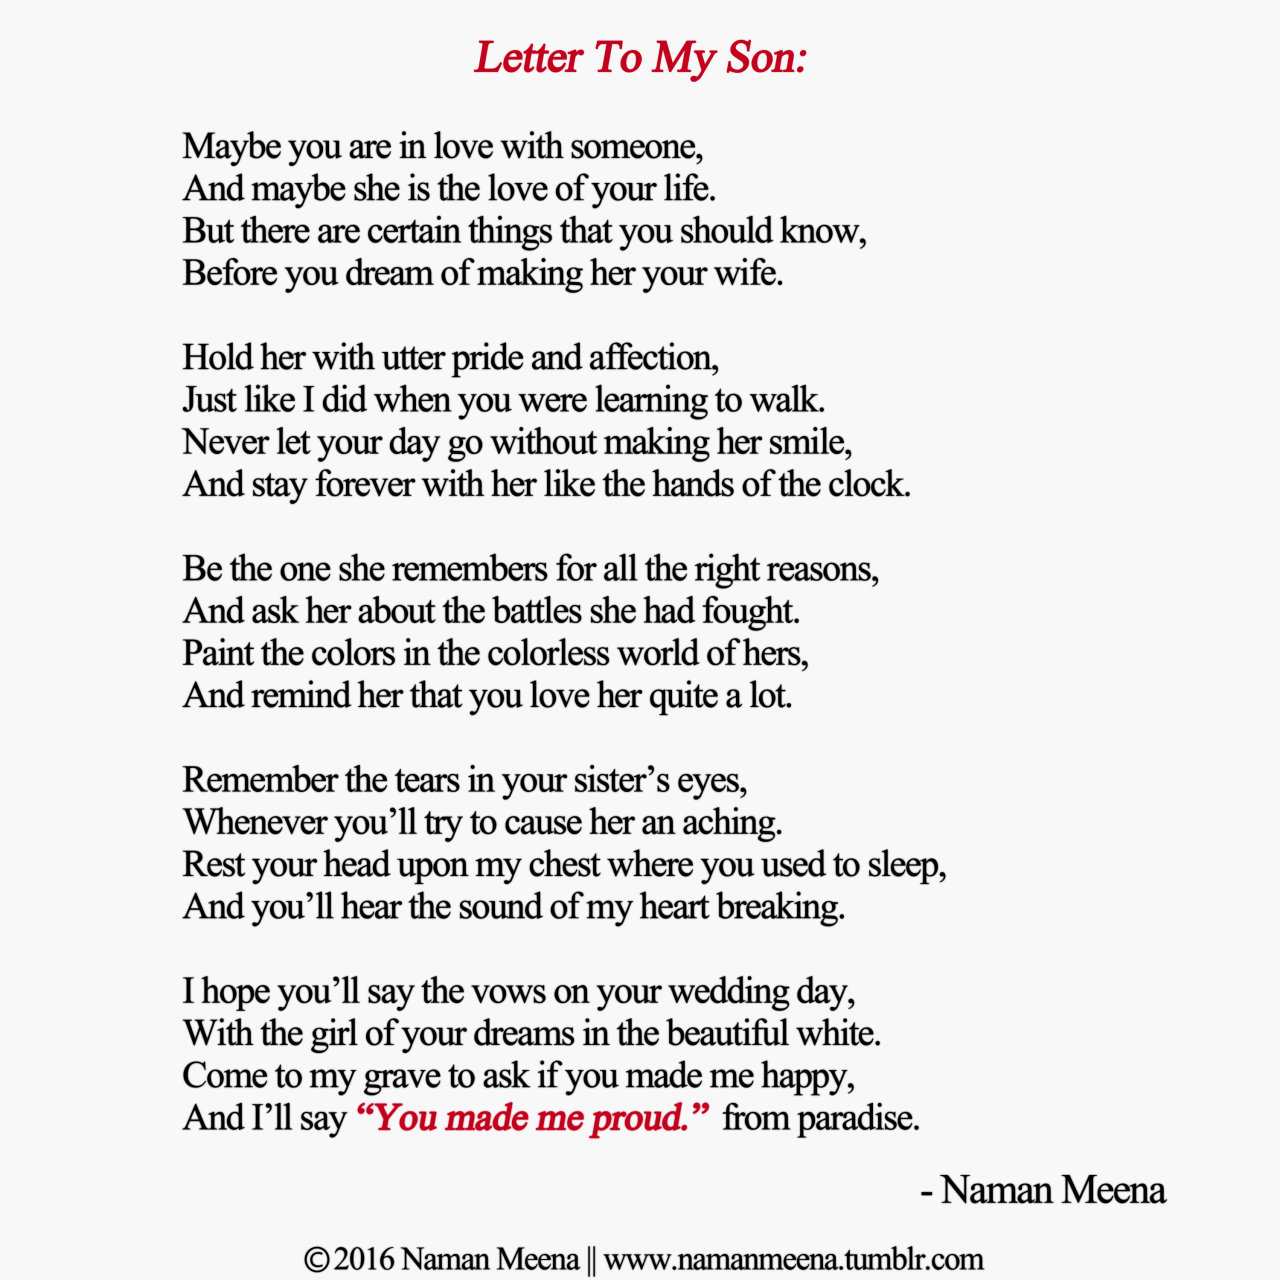 a letter to my son from his mother naman meena poetry quot letters to my quot naman meena 28942 | a4273c60c82c9a694f34ce717e6497d0